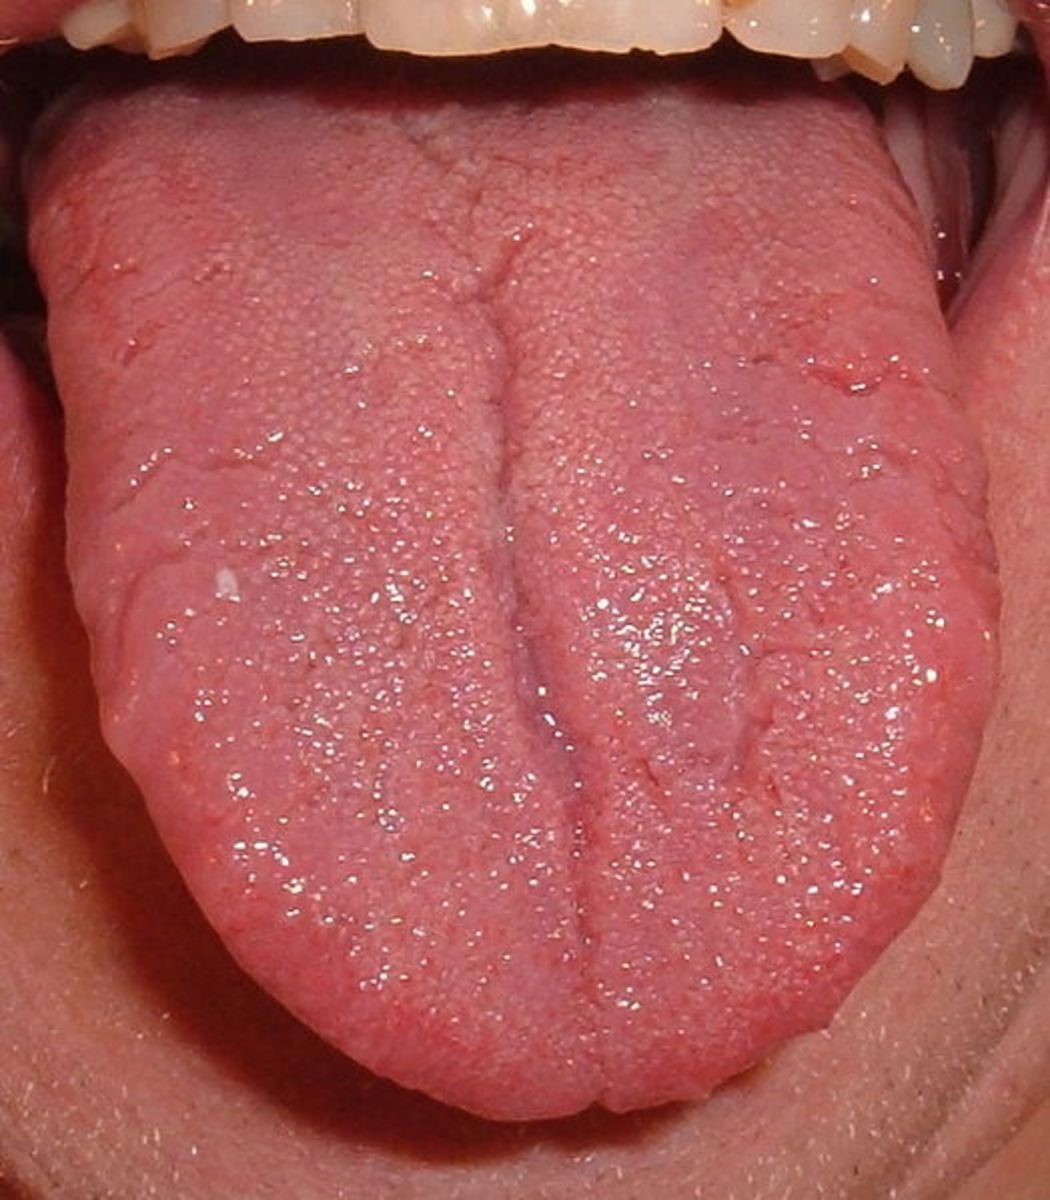 An image of a healthy human tongue.